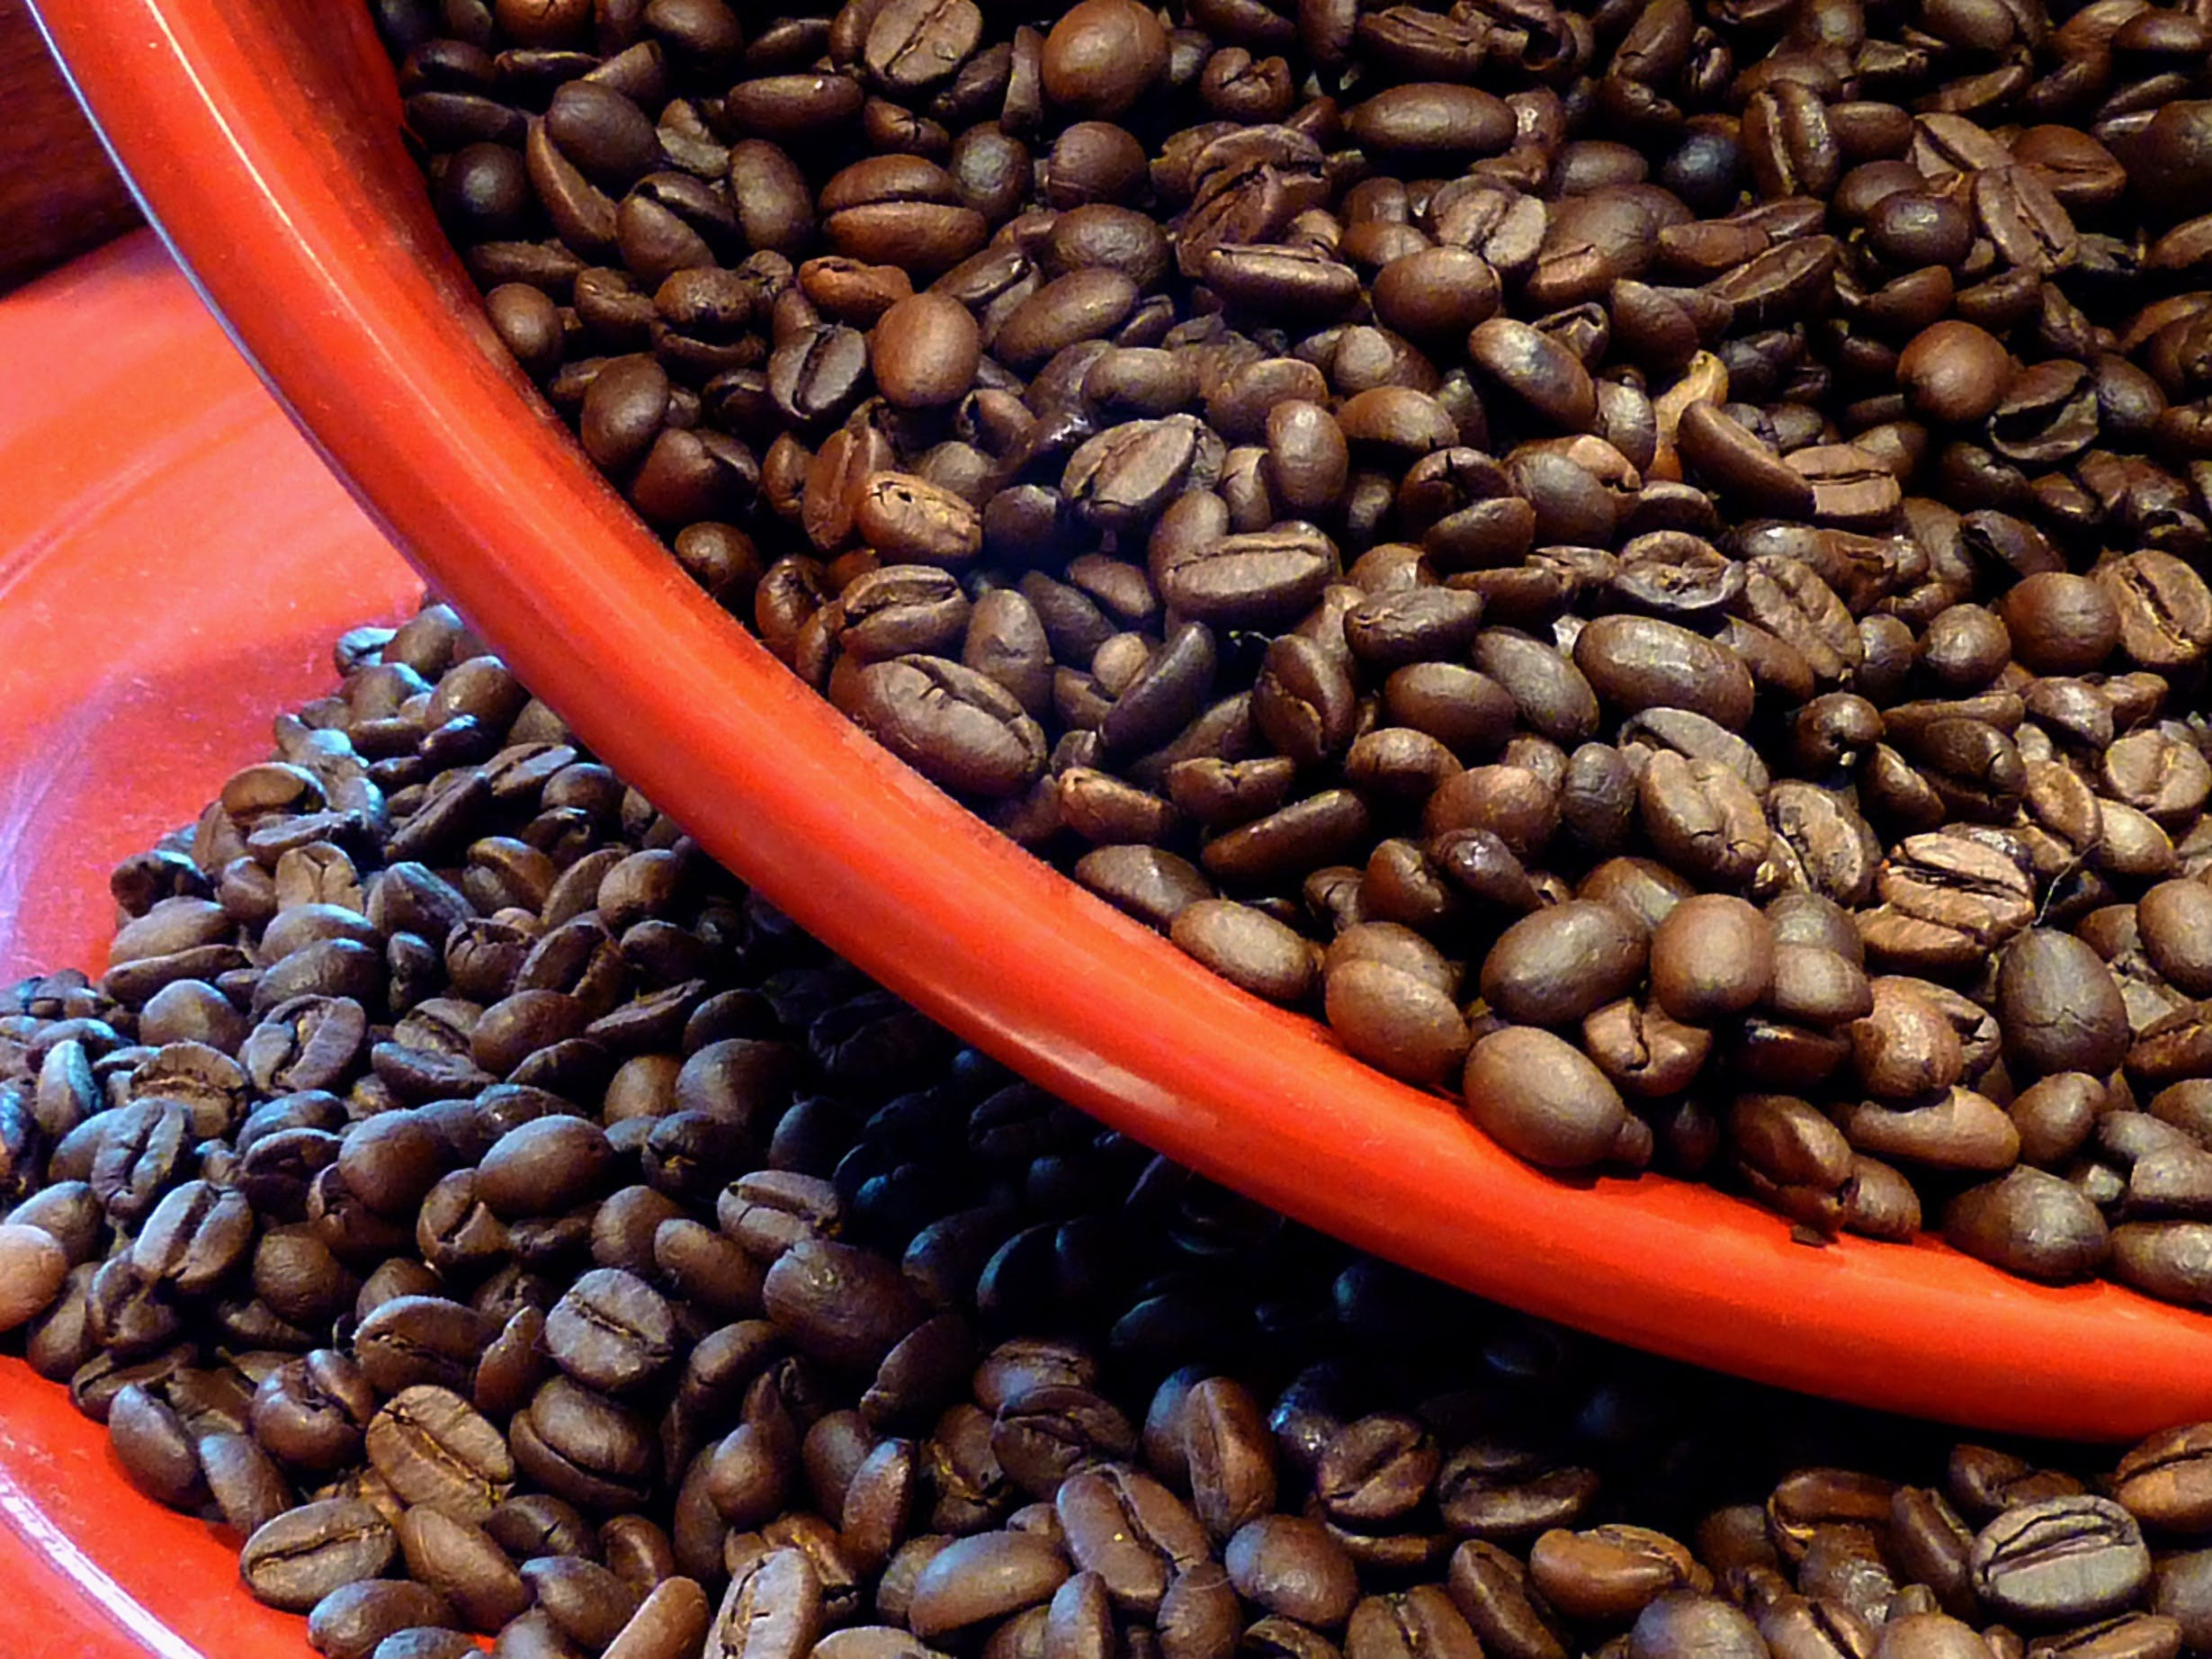 Kostenloses Stock Foto zu koffein, kaffee, aromatisch, geröstet